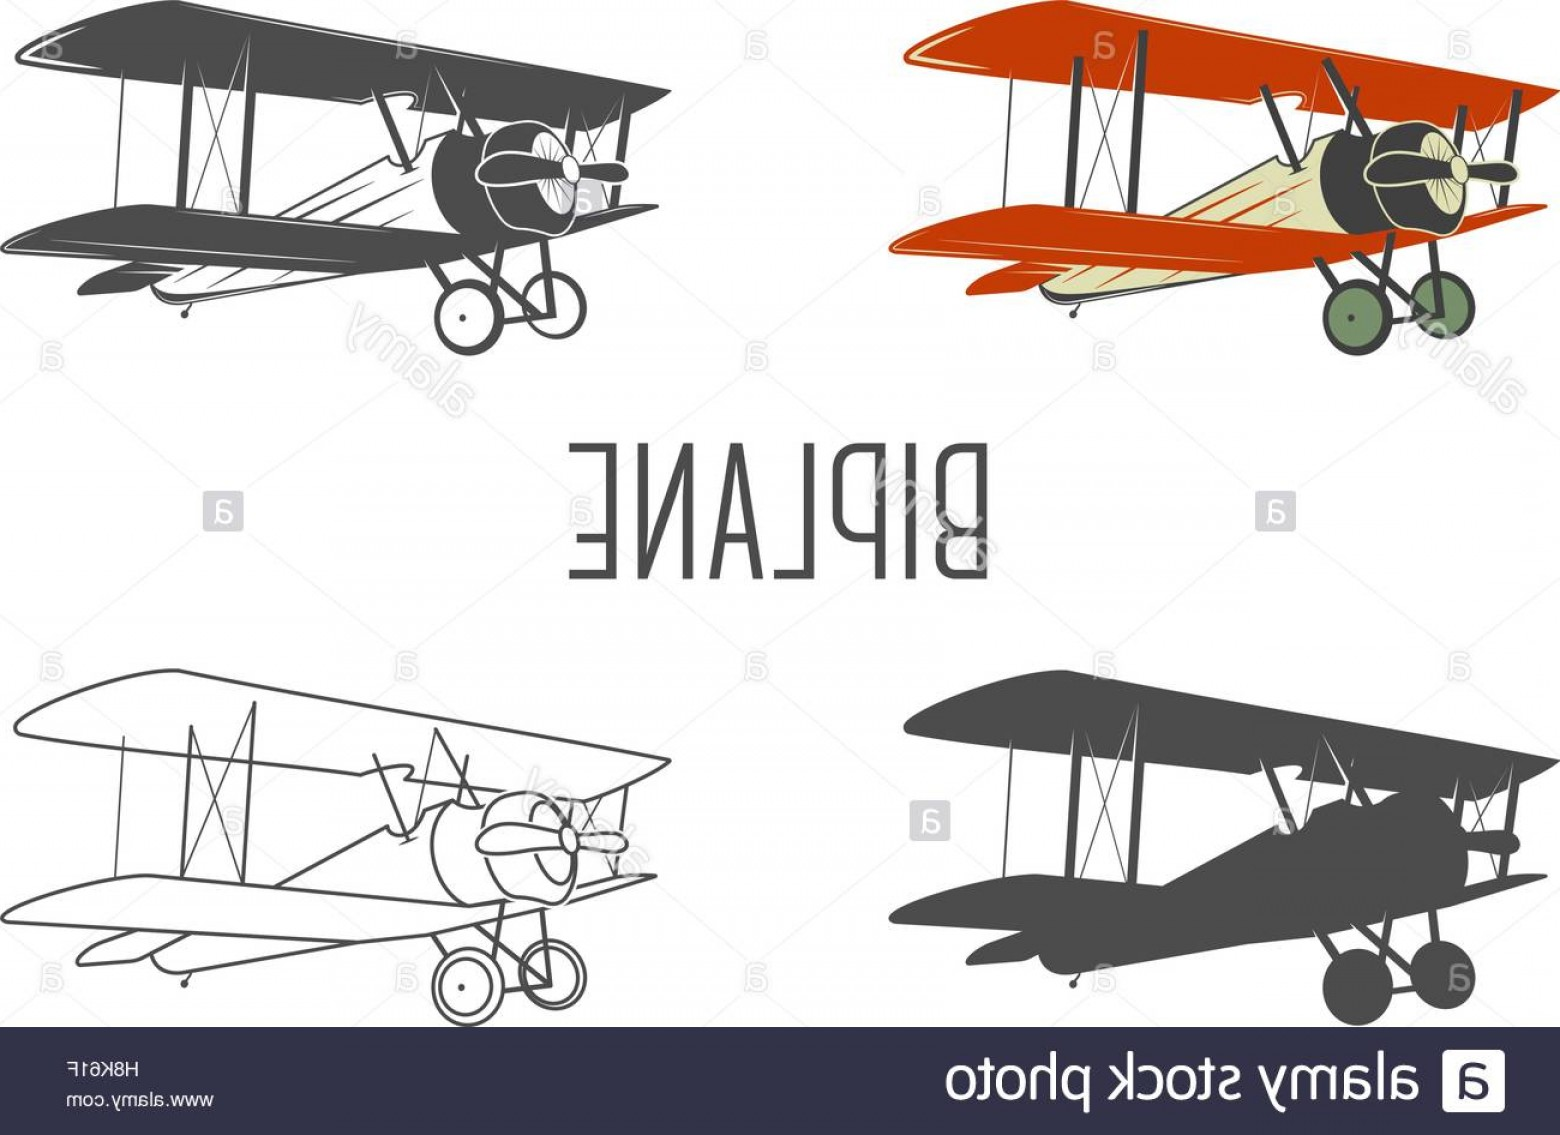 Old School Airplane Fighter Silhouette Vector: Stock Photo Set Of Vintage Aircraft Design Elements Retro Biplanes In Color Line